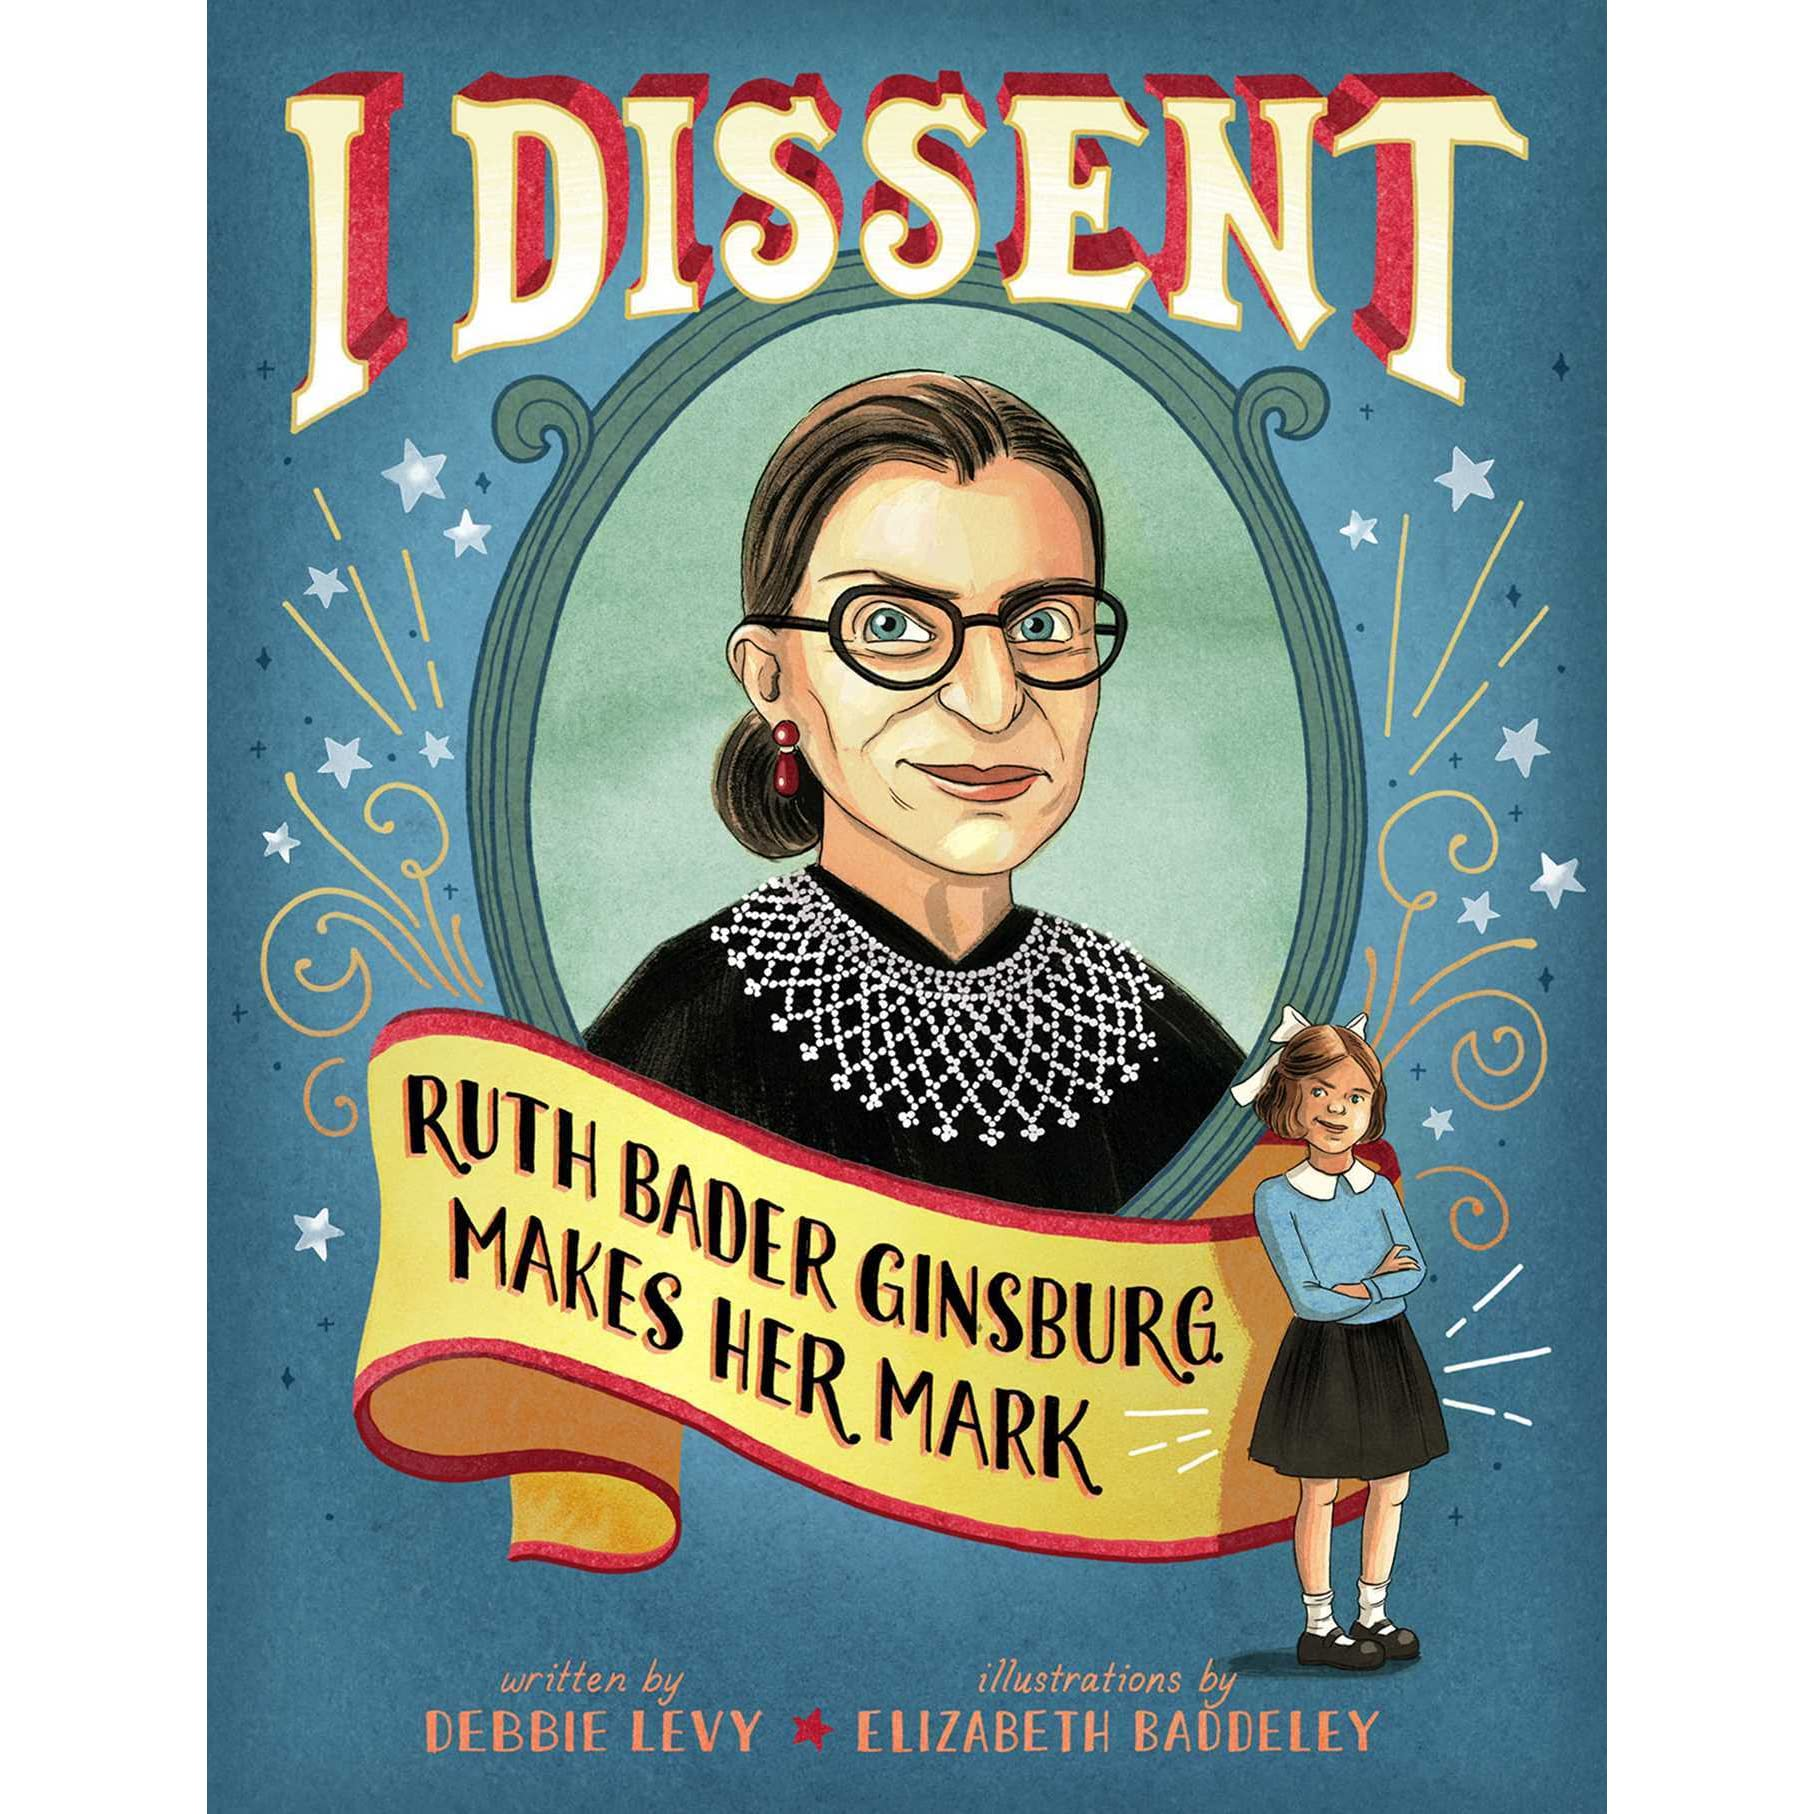 i dissent ruth bader ginsburg makes her mark by debbie